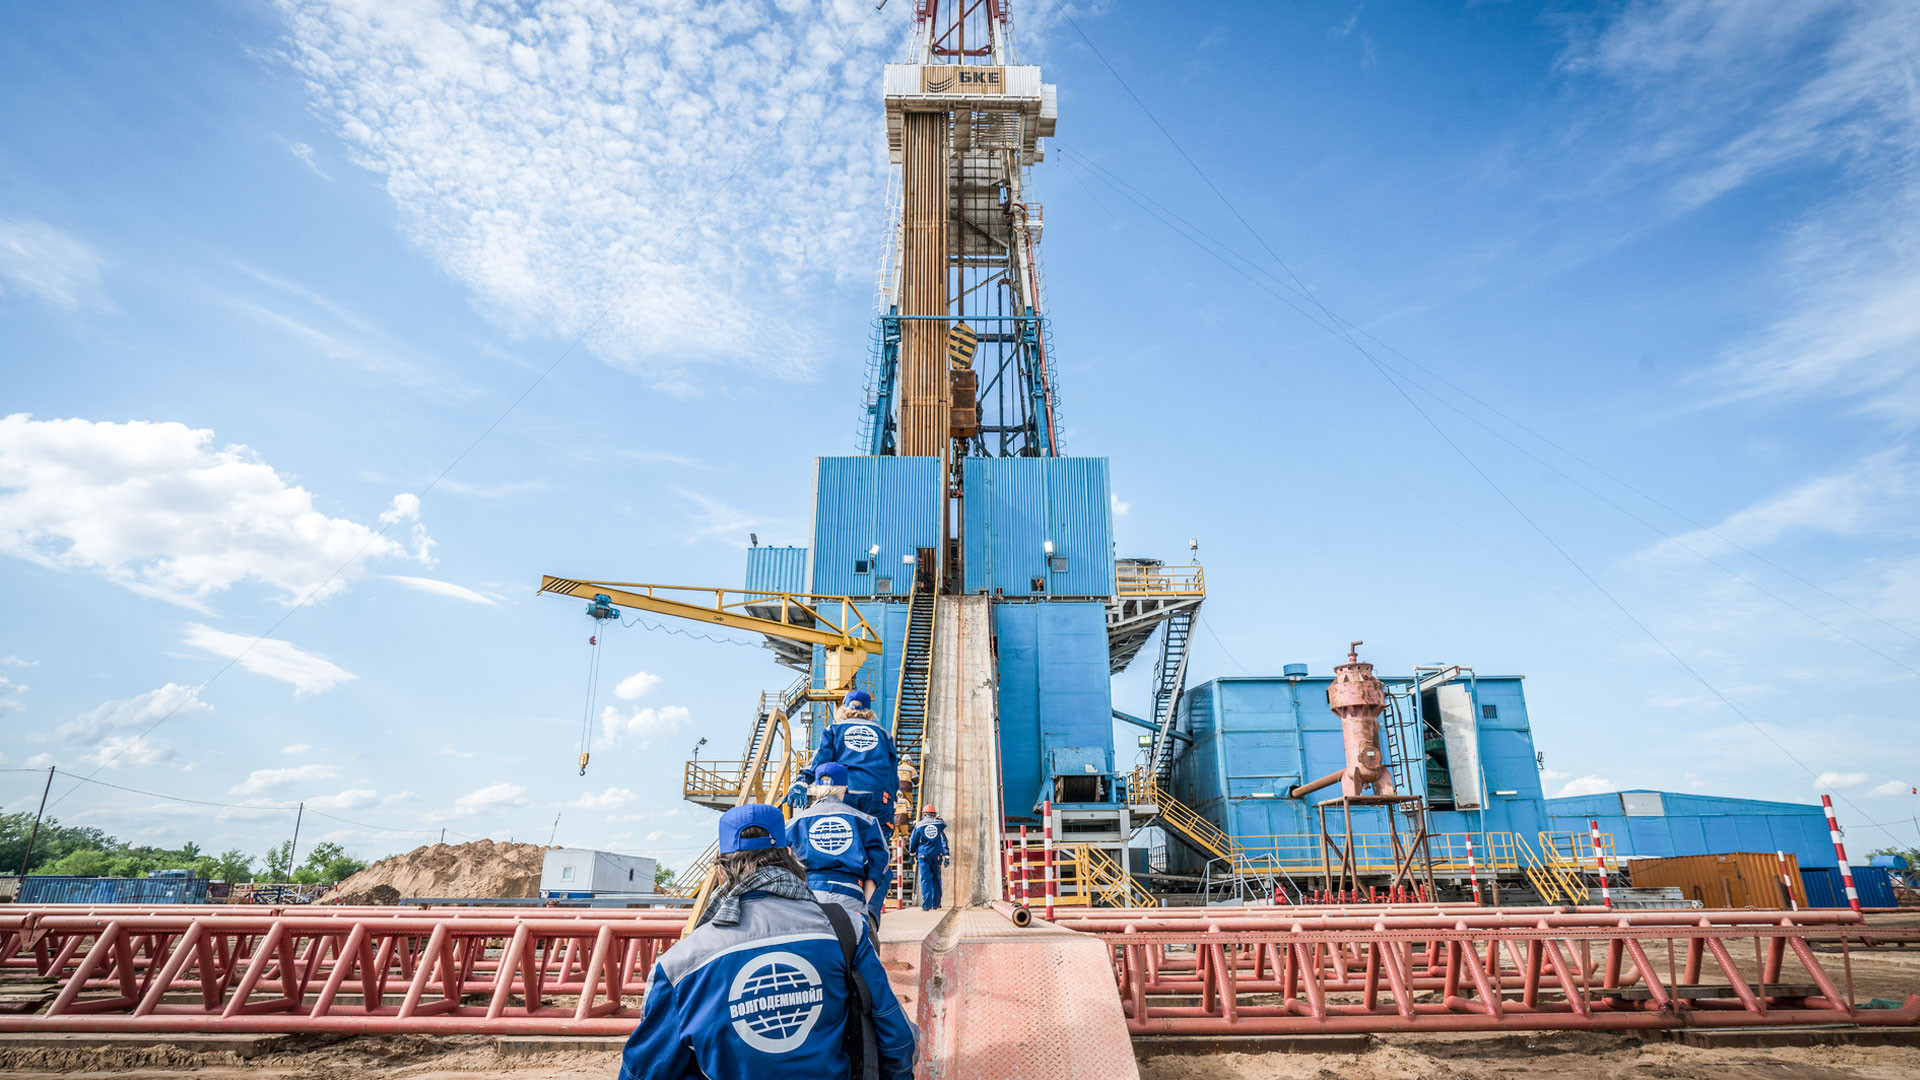 Wolgodeminoil wins new exploration licence in Southern Russia